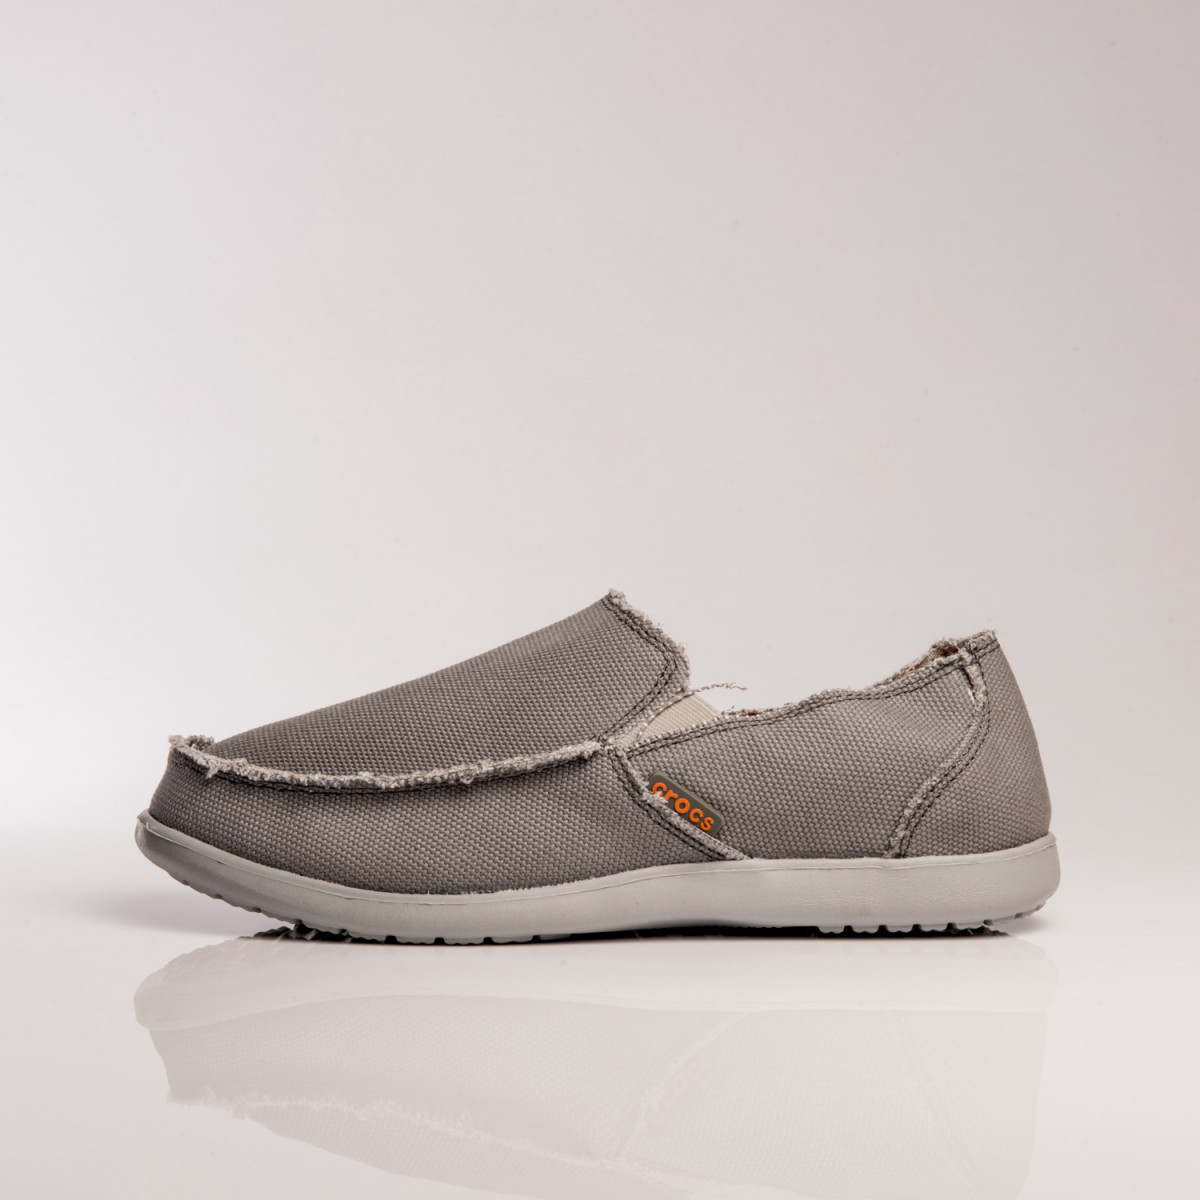 MOCASINES CROCS SANTA CRUZ LIGHT